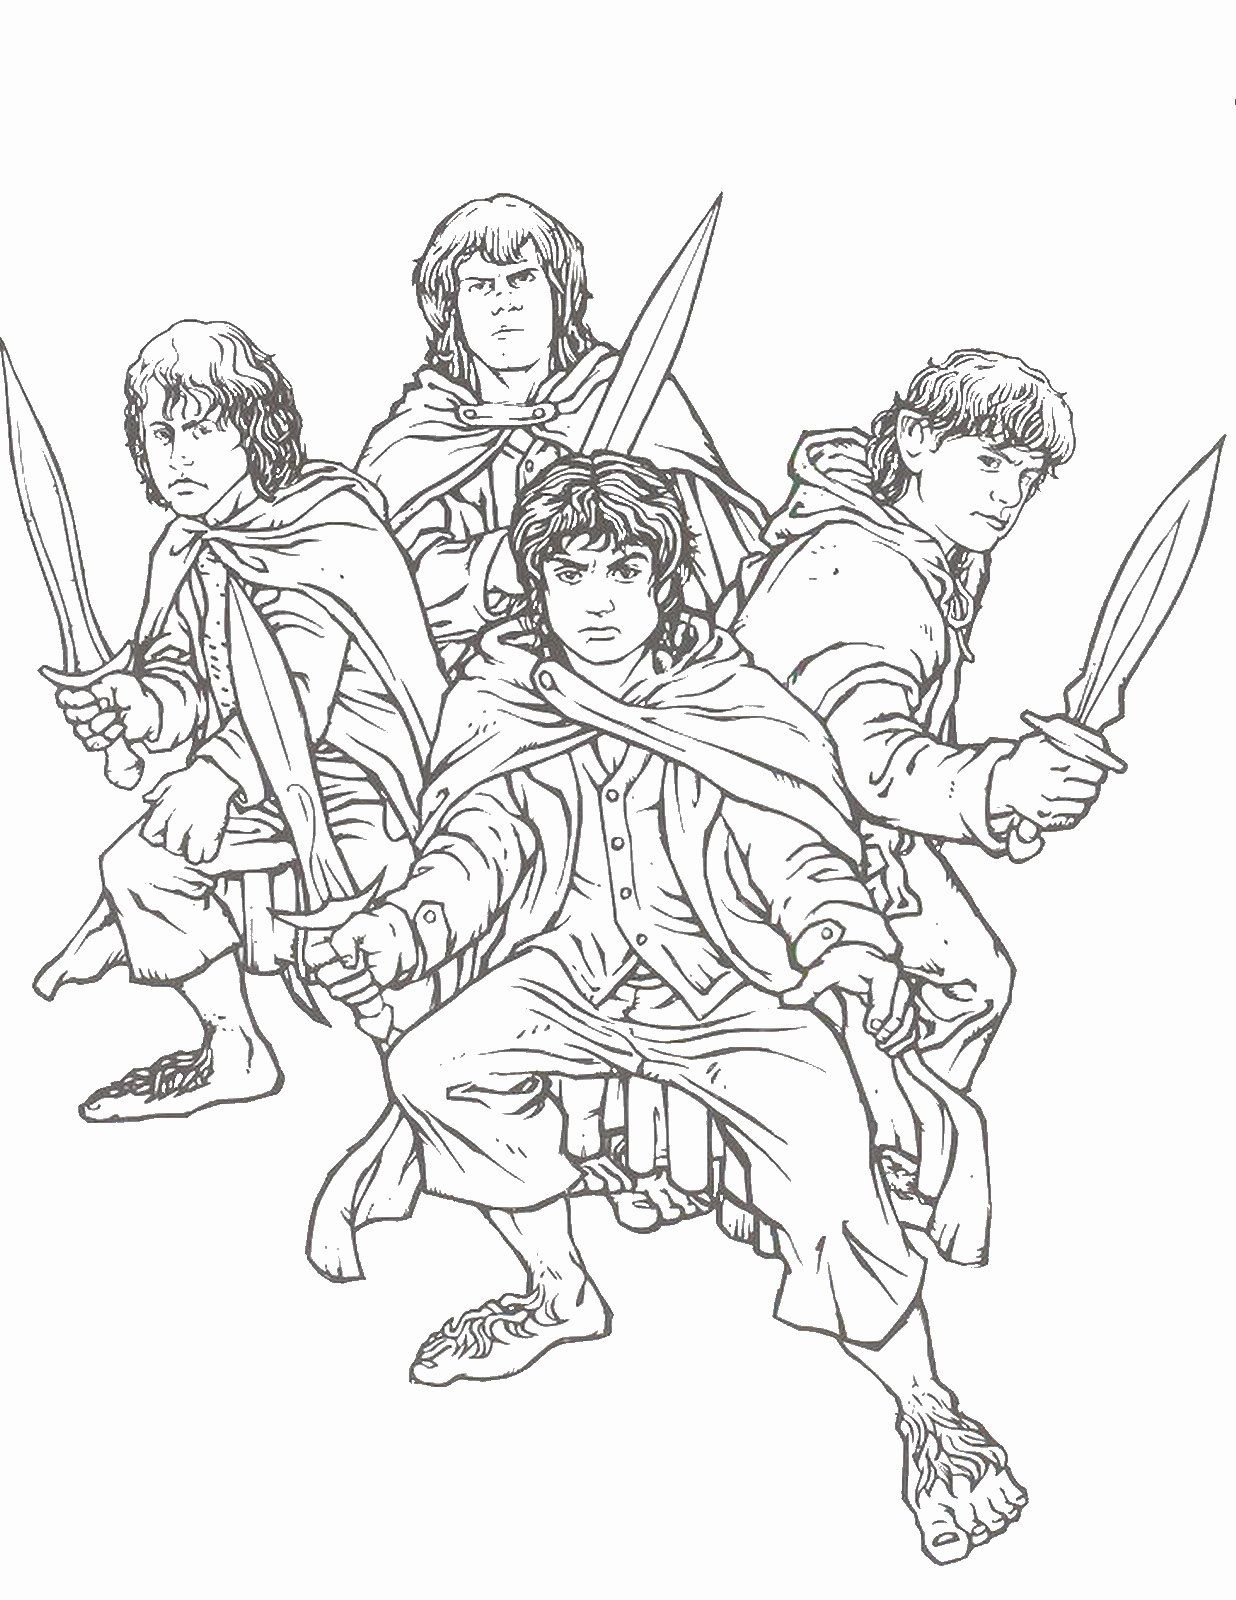 Lord Of The Rings Coloring Book New Lord Of The Rings Coloring Pages Coloring Books Cat Coloring Book Coloring Pages